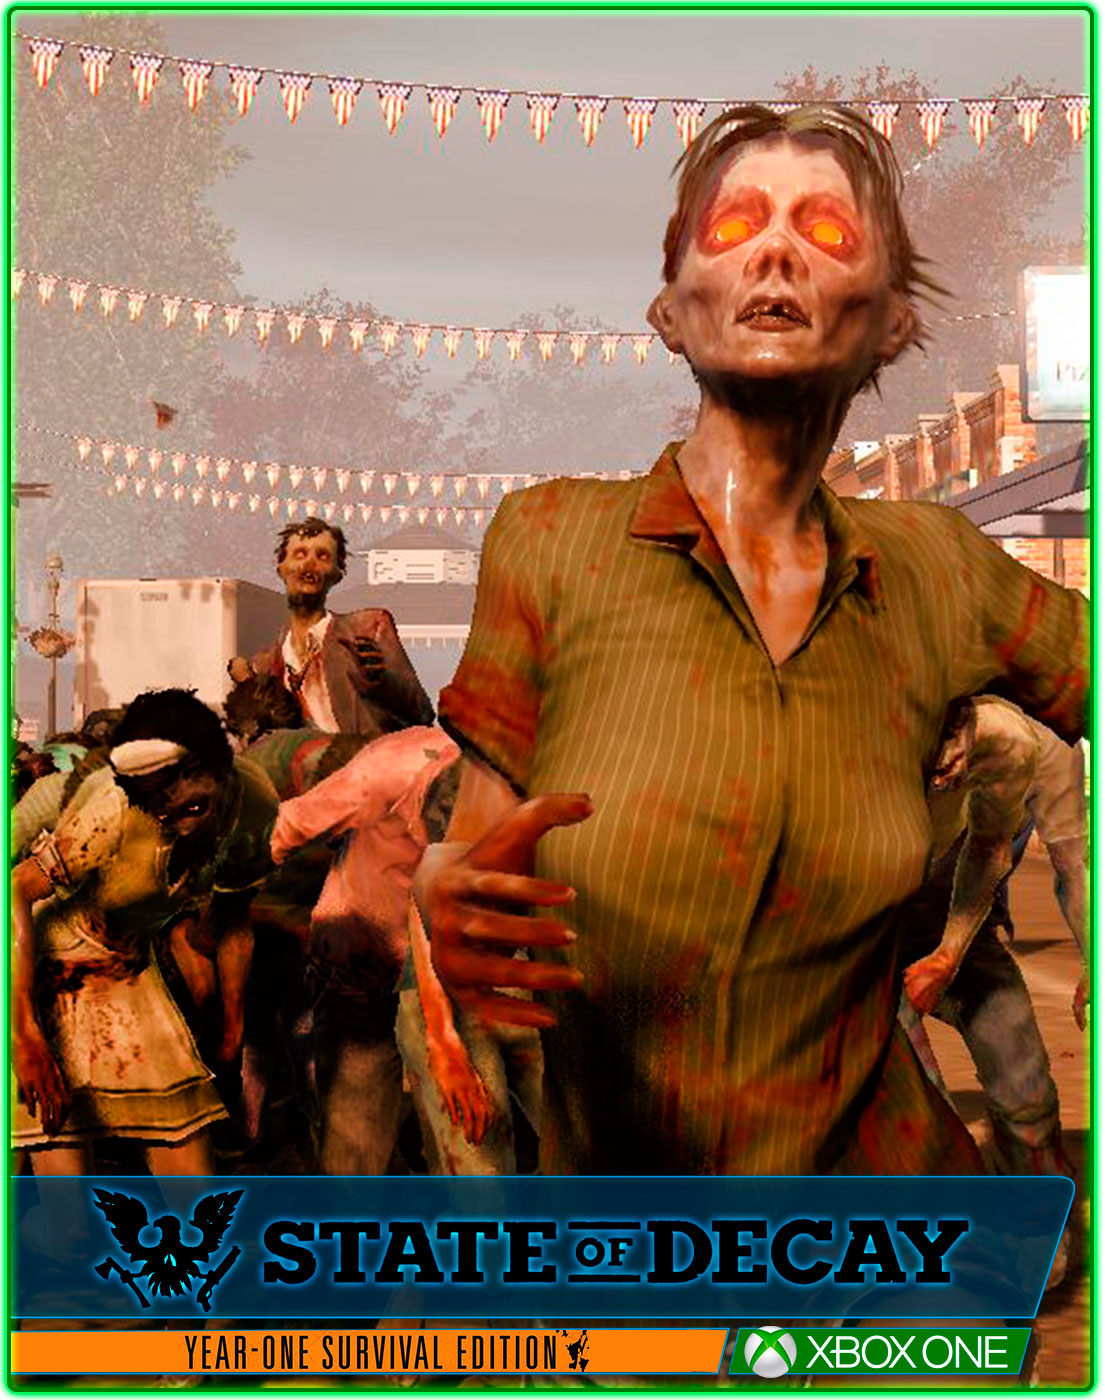 State of Decay Year One Survival Edition(XBOX ONE)